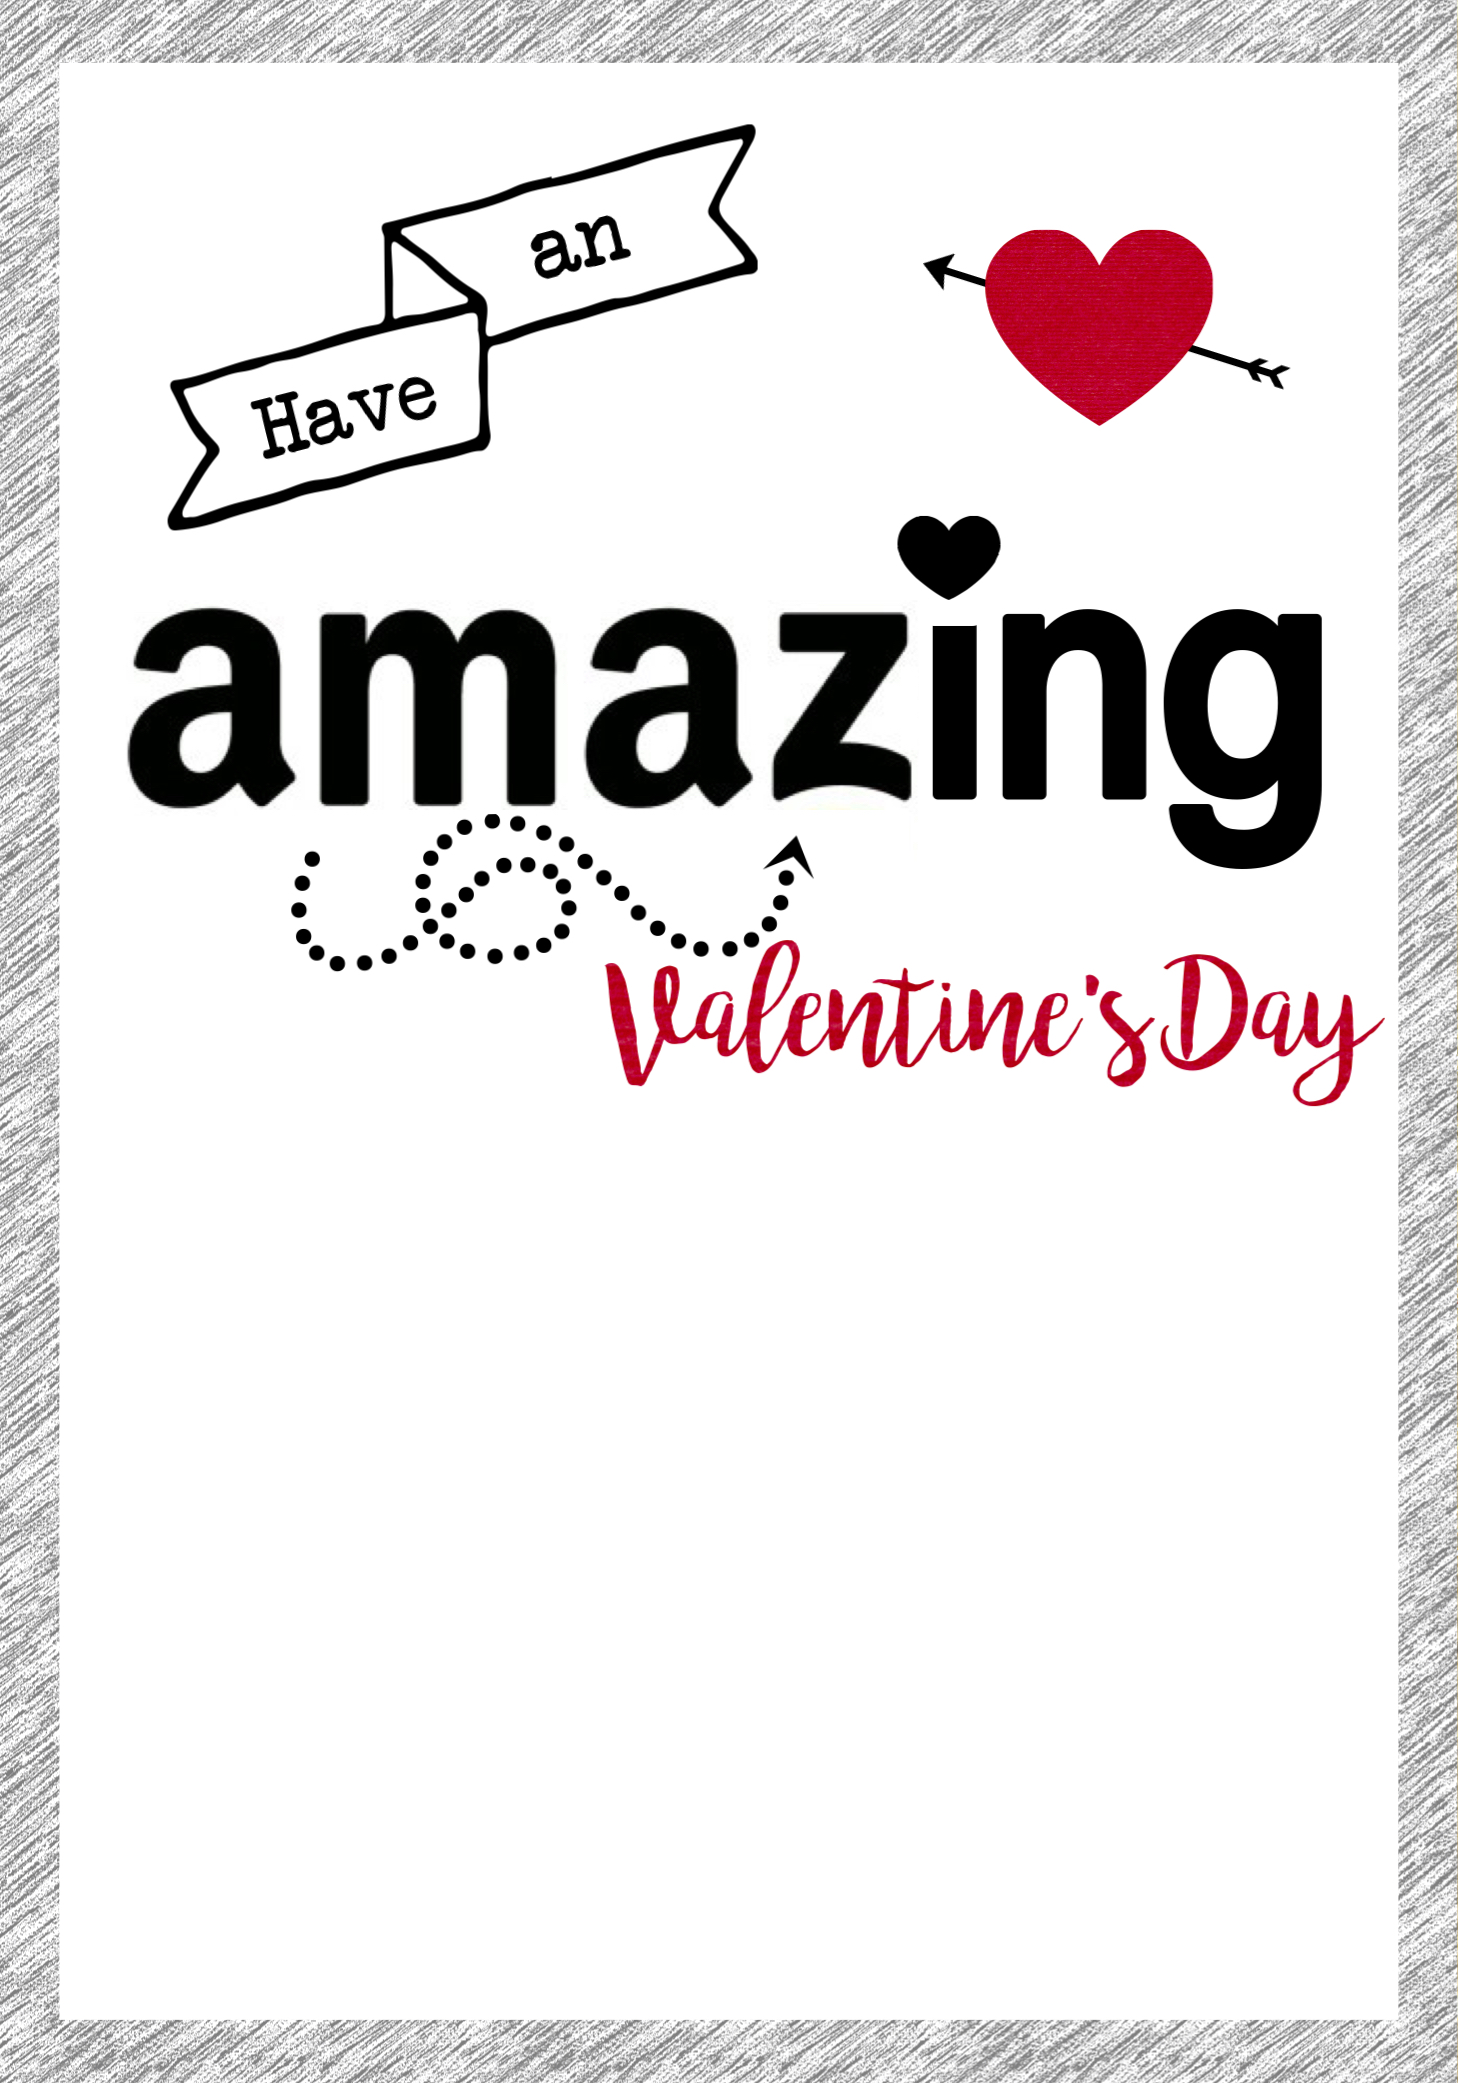 photograph regarding Amazon Gift Card Printable named Amazon Valentine Card Printable - Paper Path Layout